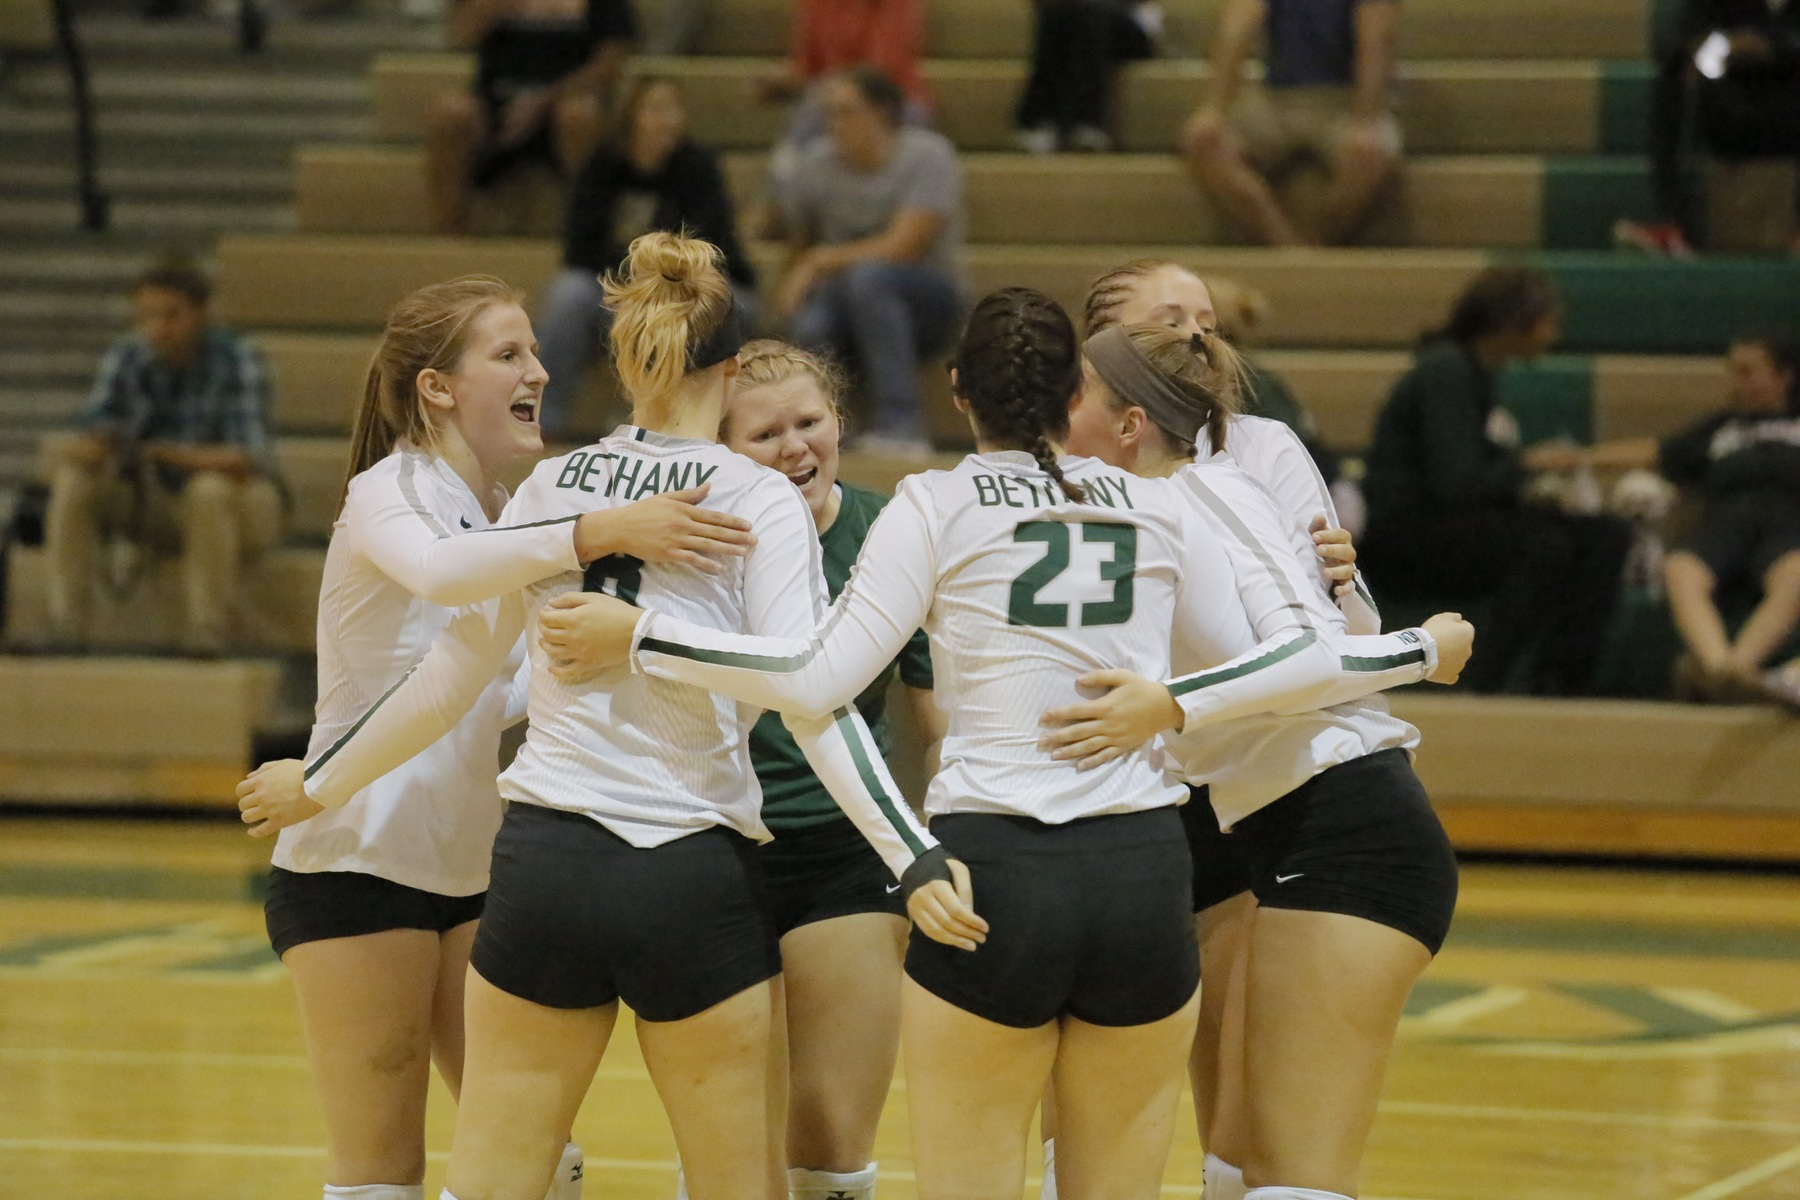 Bethany Volleyball Drops Two at Ginny Hunt Kilt Classic